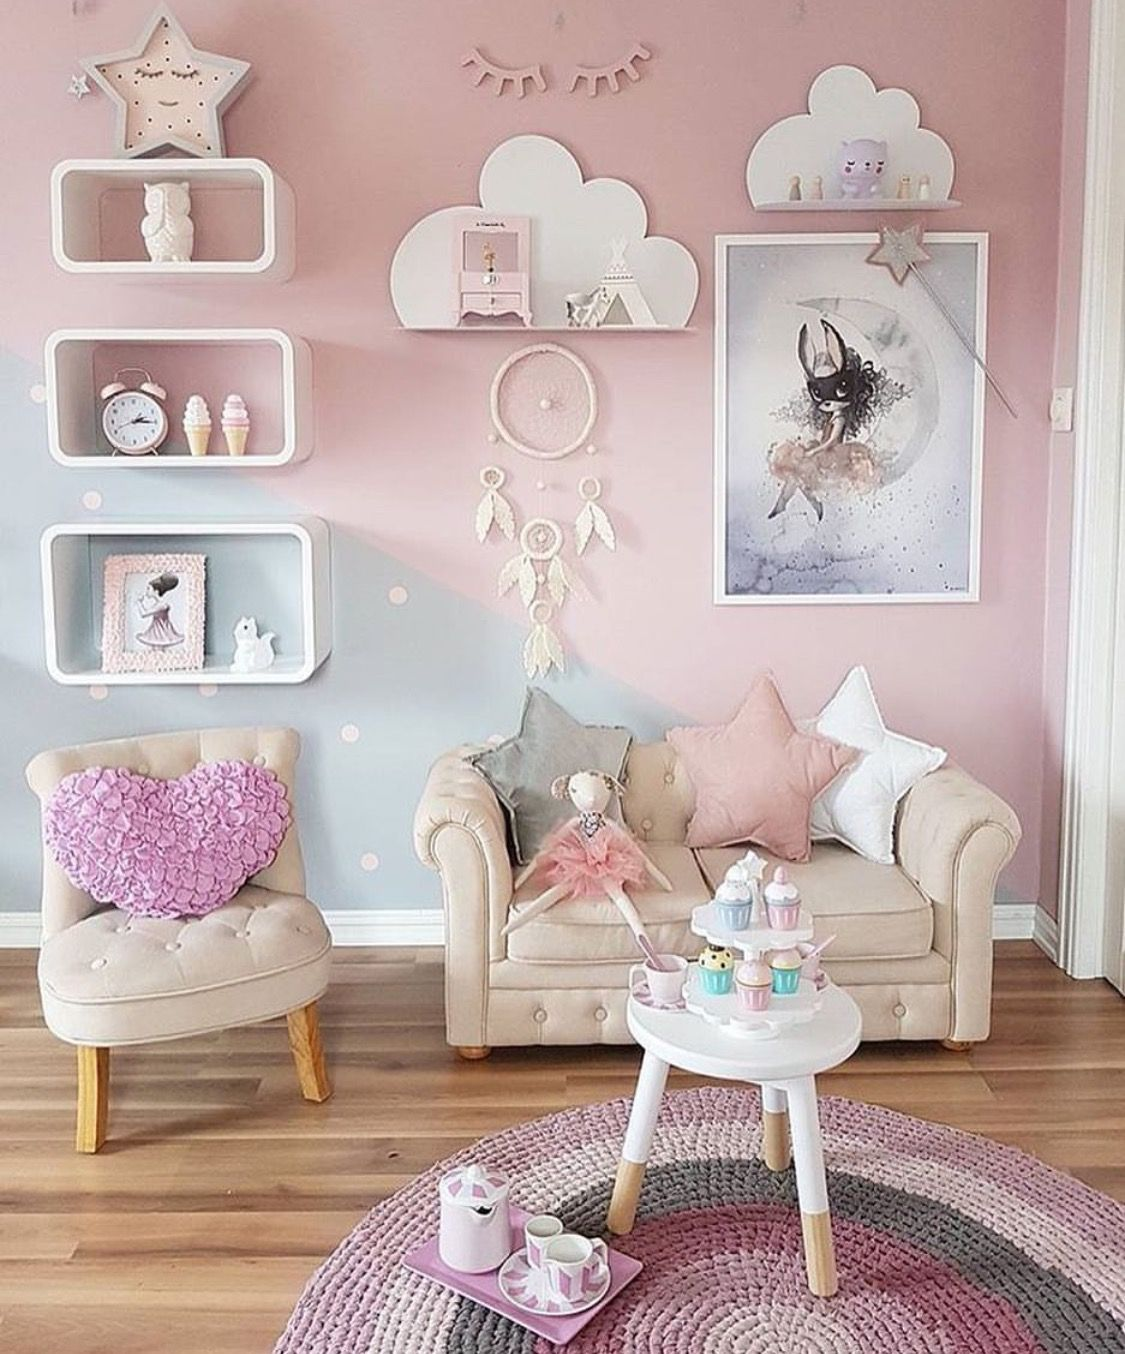 The Best Pinterest Bedroom Ideas For 2019: So Boujee For A Toddler